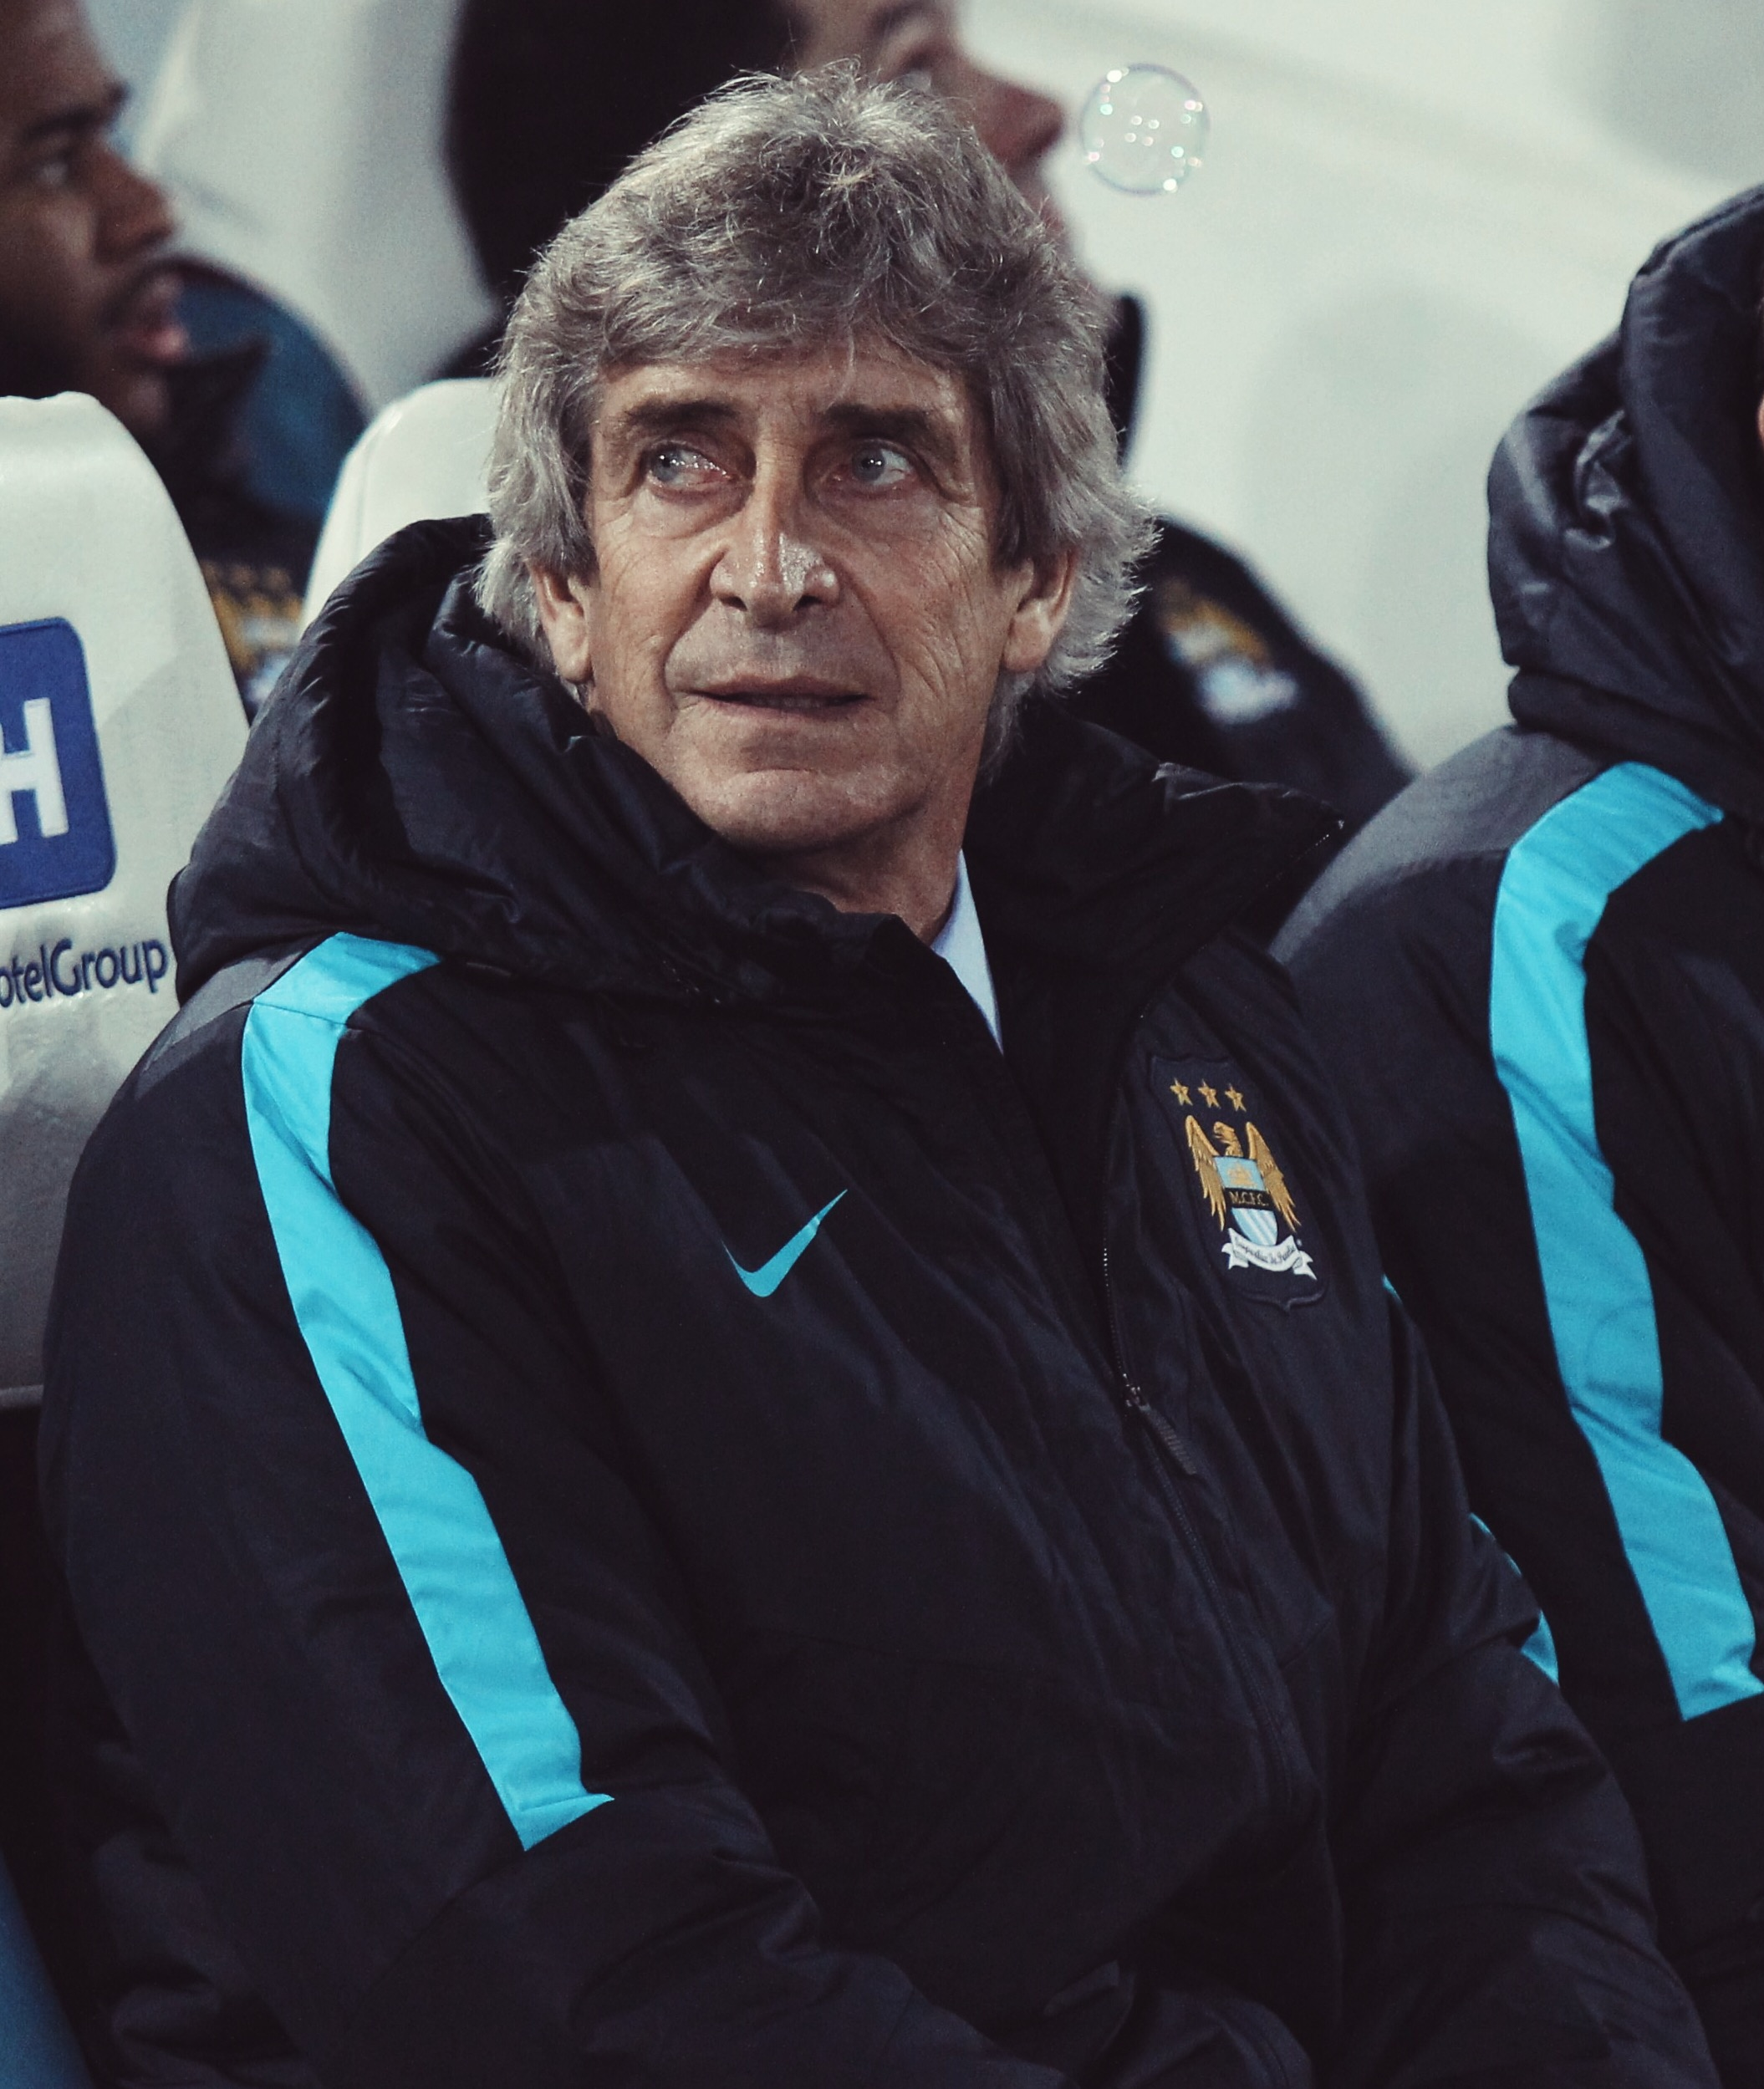 The 65-year old son of father (?) and mother(?) Manuel Pellegrini in 2018 photo. Manuel Pellegrini earned a  million dollar salary - leaving the net worth at 40 million in 2018